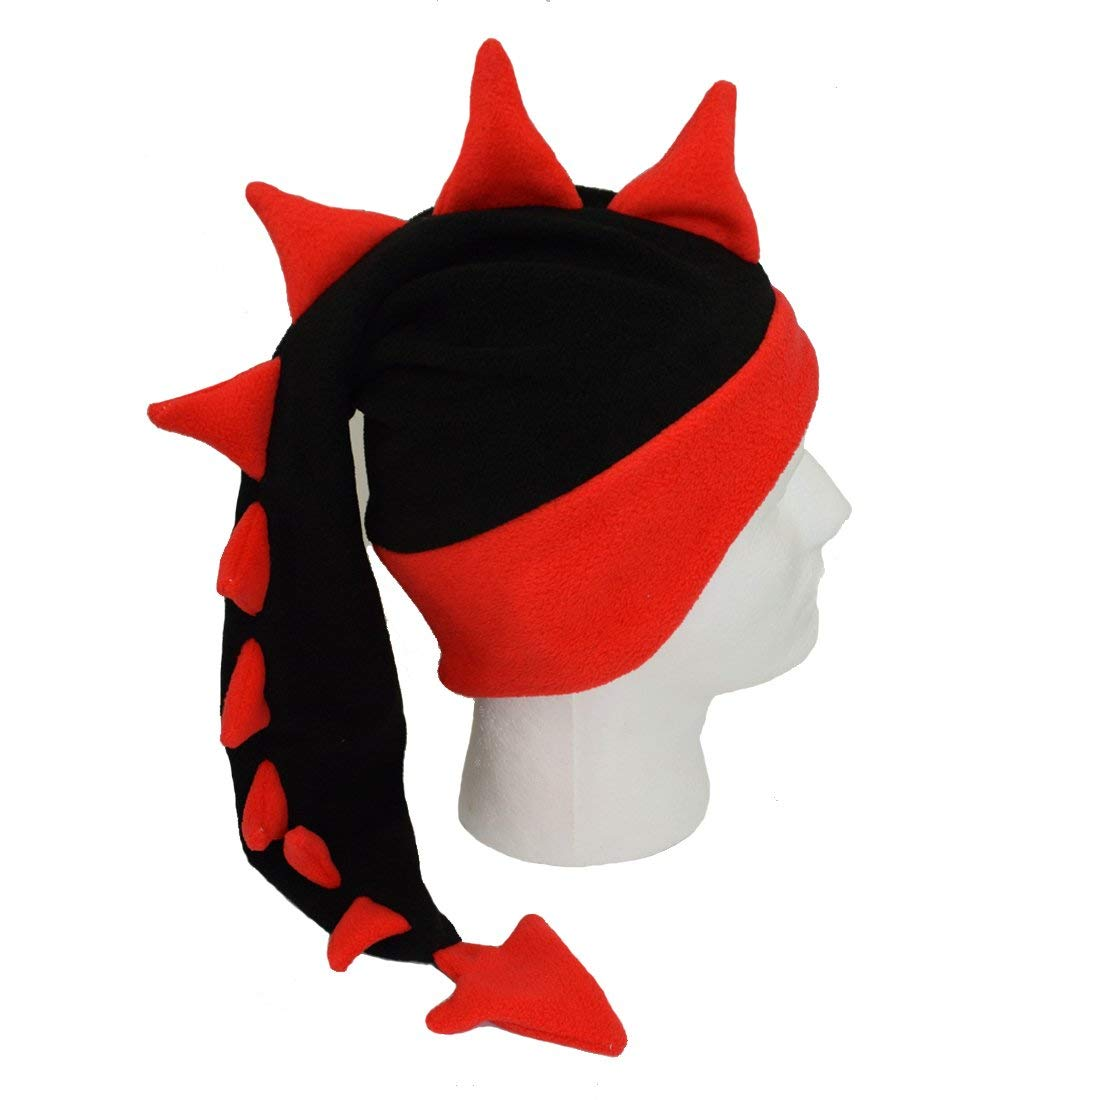 2b1b9b67593 Get Quotations · Echolife Unisex Kids Adults Dragon Tail Hat Devil Spikes  Hats Cap for Halloween Costumes Party